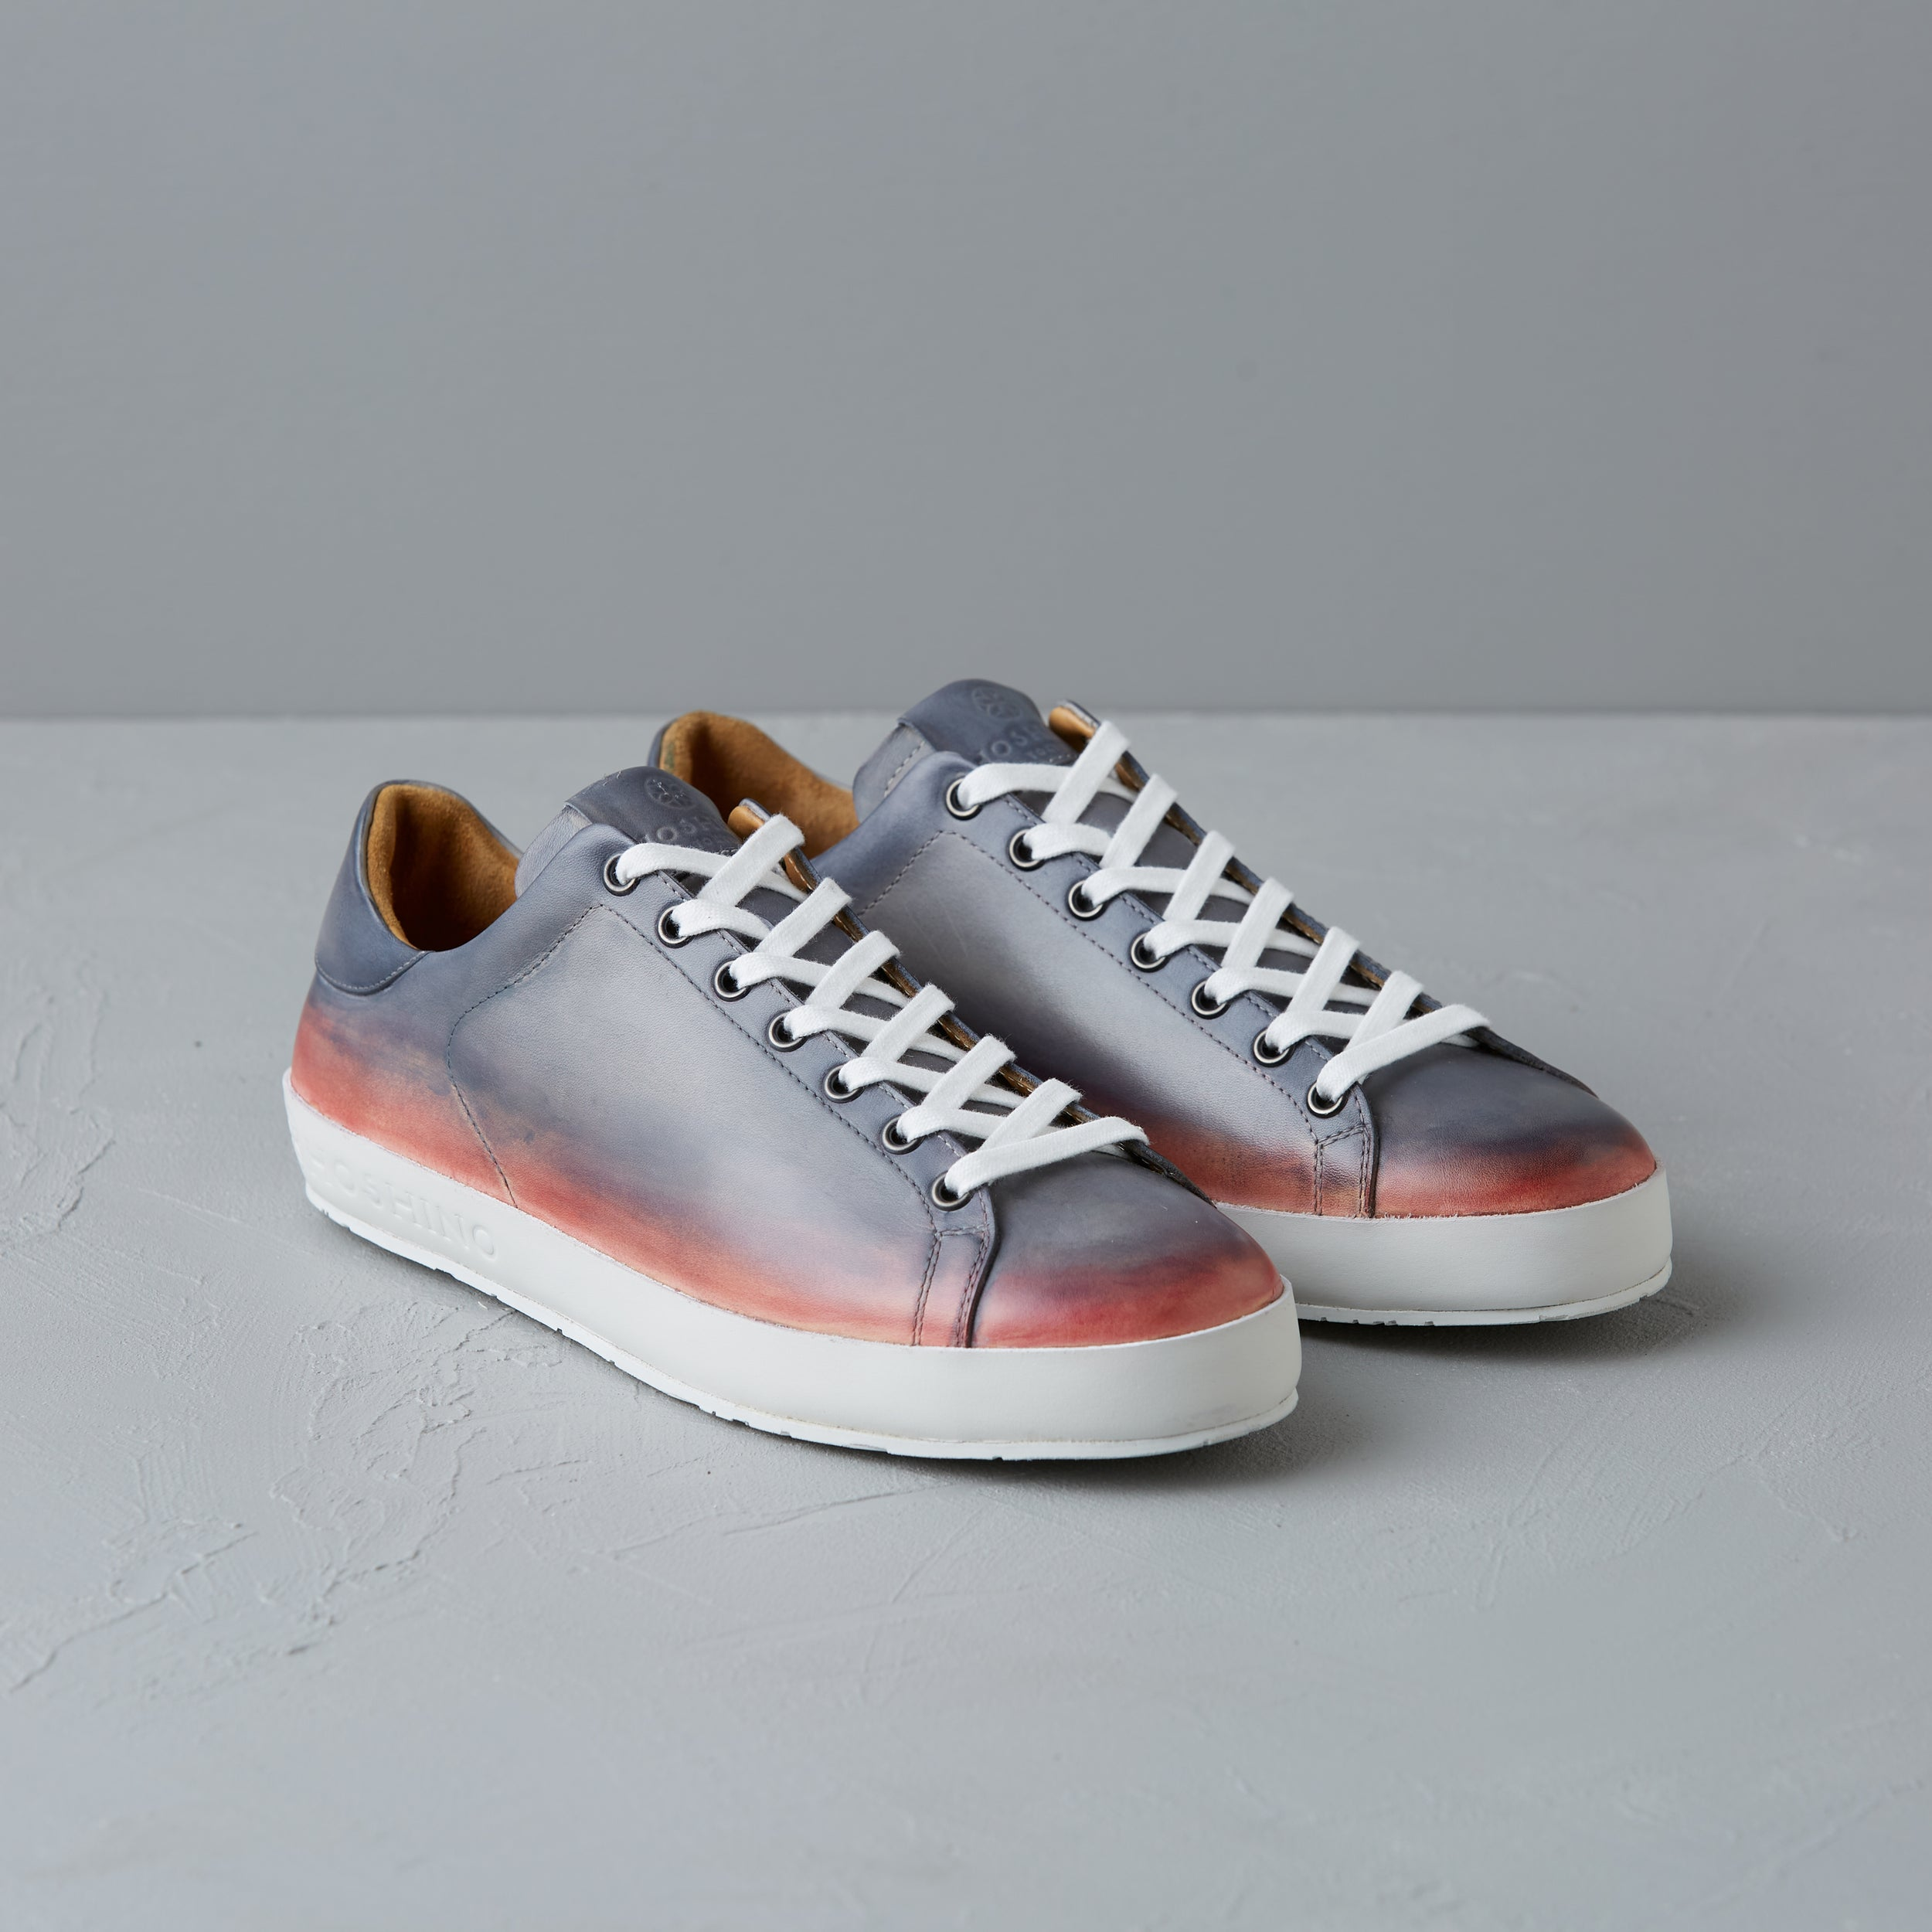 [Women's] Liberte : Patine [Calf Leather] / Gray and Pink